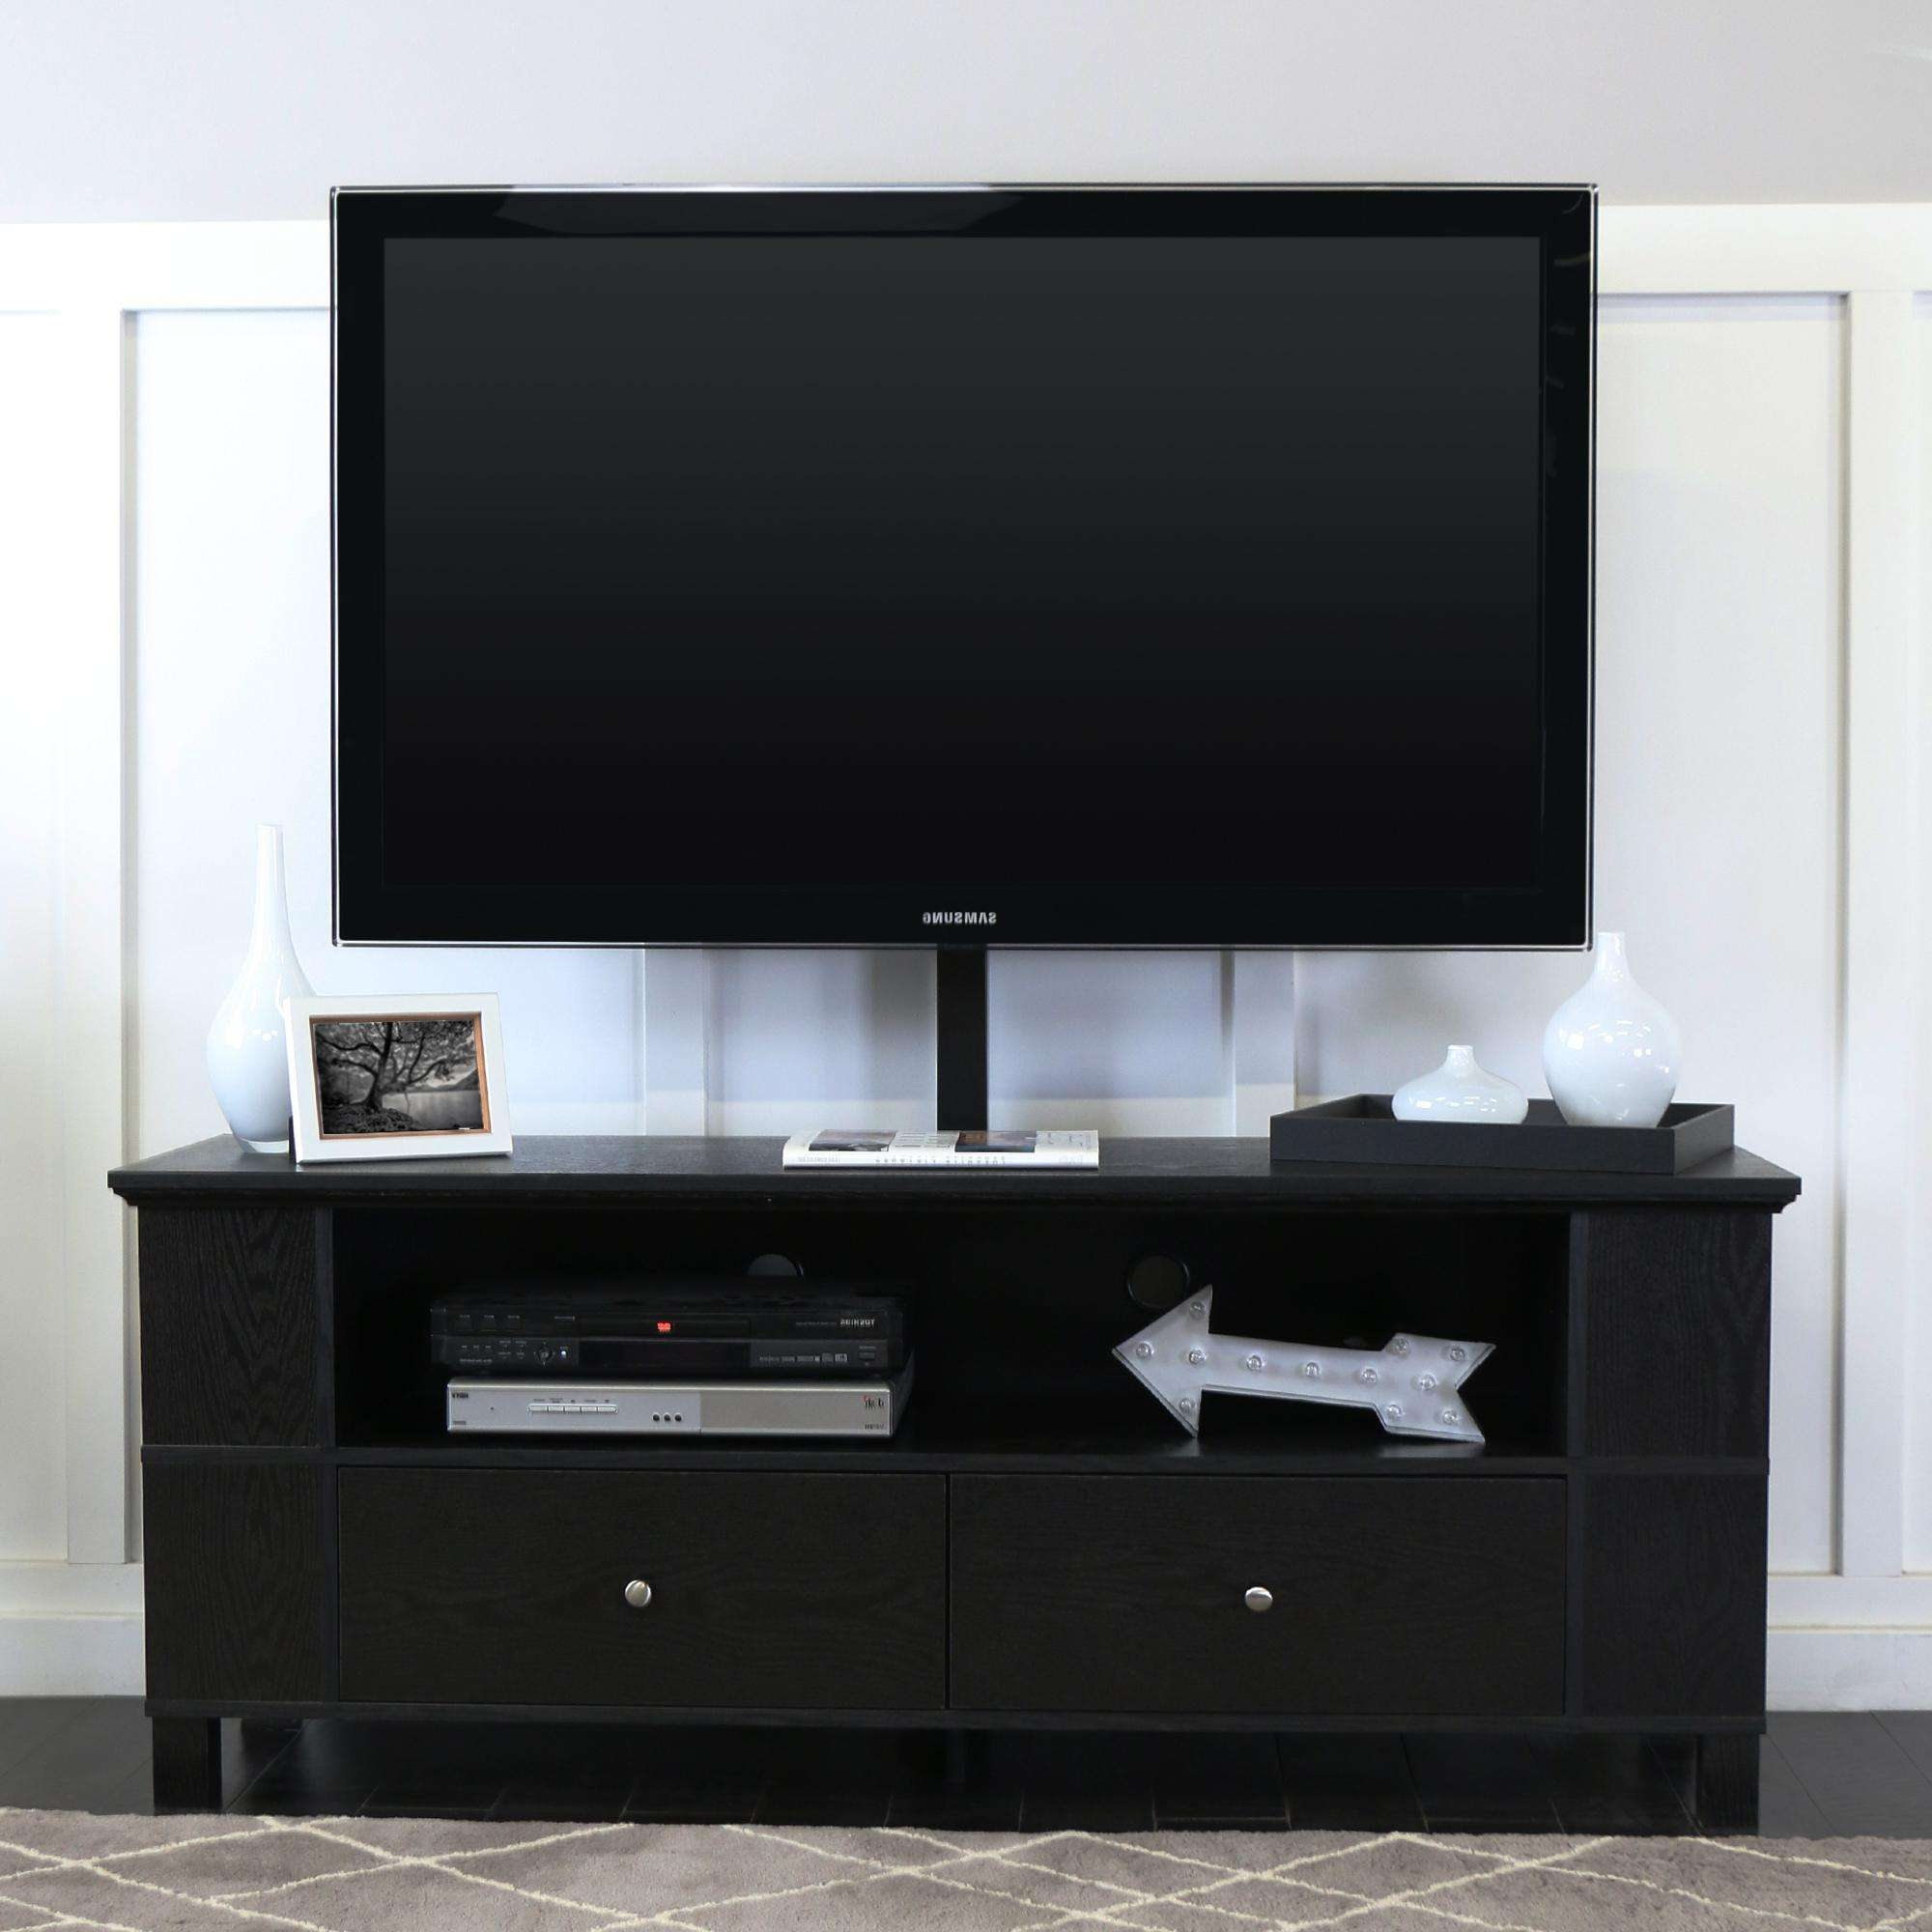 Furniture: Awesome Cymax Tv Stands With Cool Concepts Design With Corner 60 Inch Tv Stands (View 10 of 15)